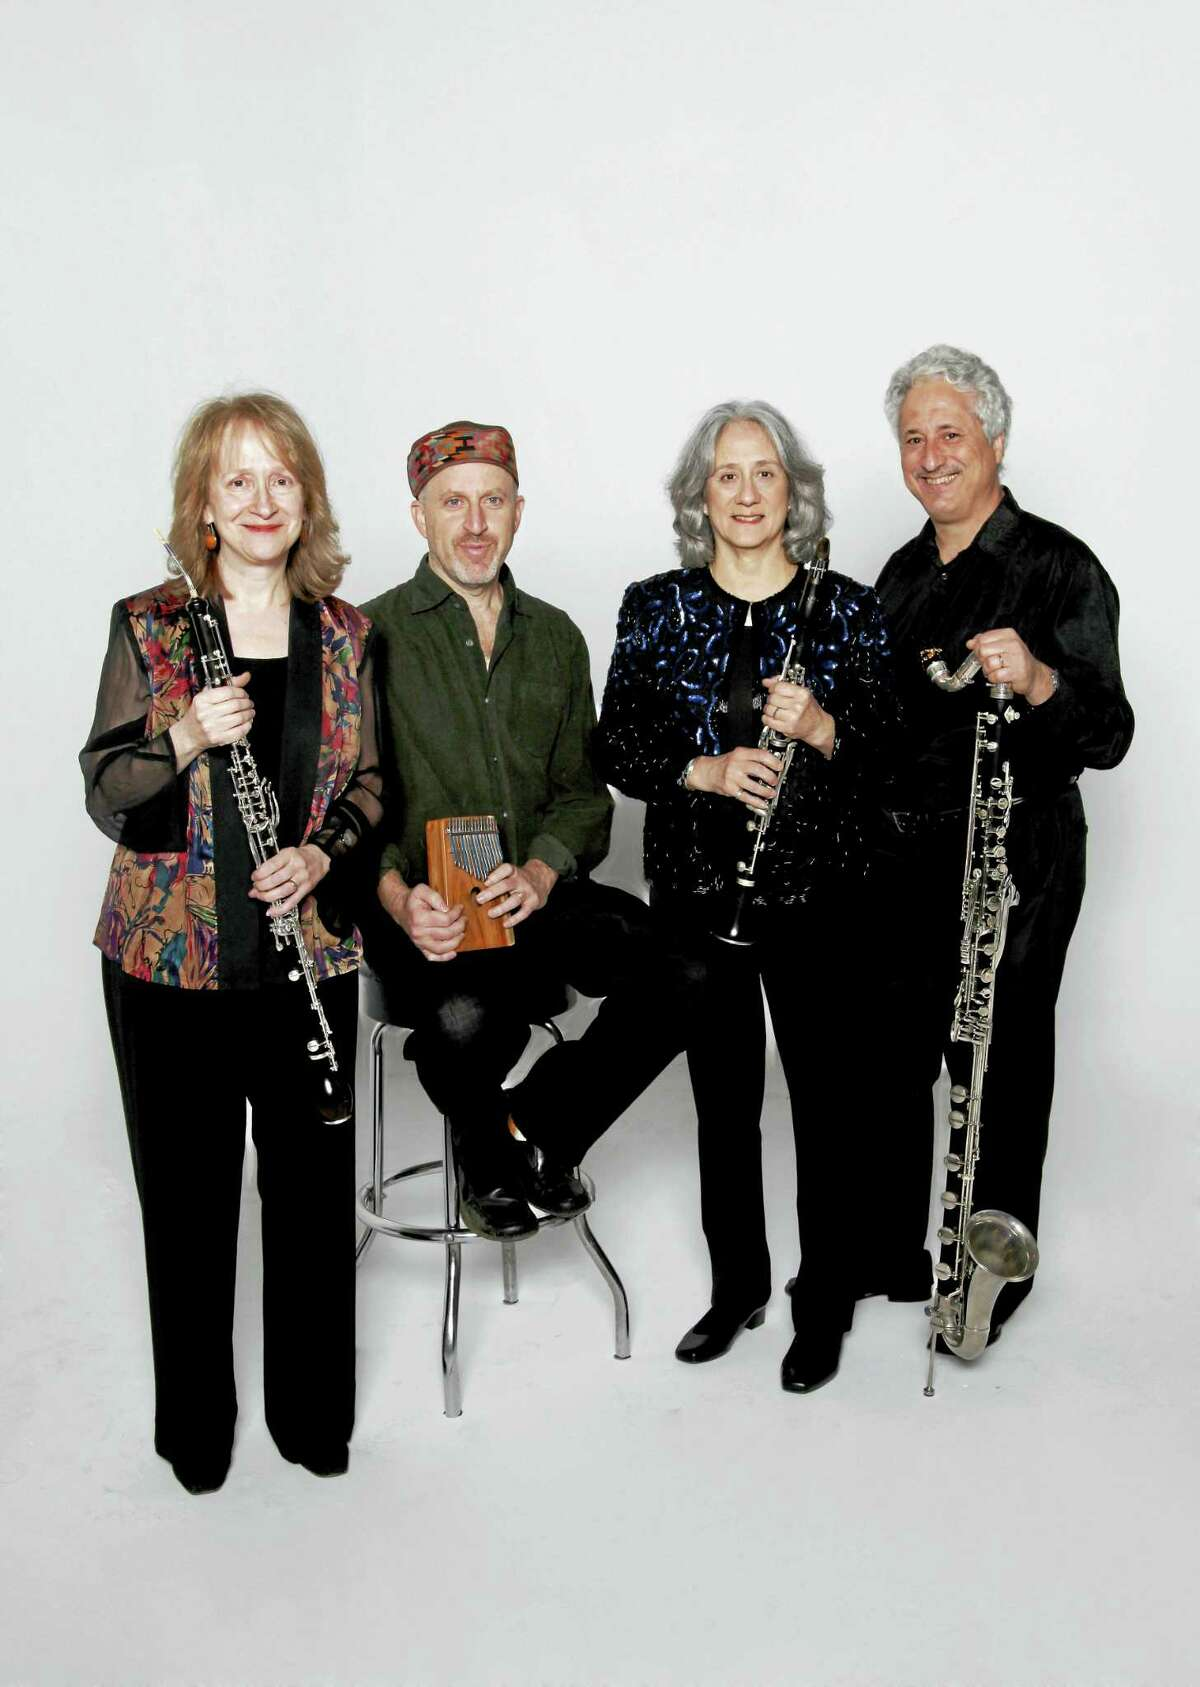 Contributed photoThe Hevreh Ensemble will present a benefit concert at the White Gallery in Lakeville on Sunday, Aug. 28.